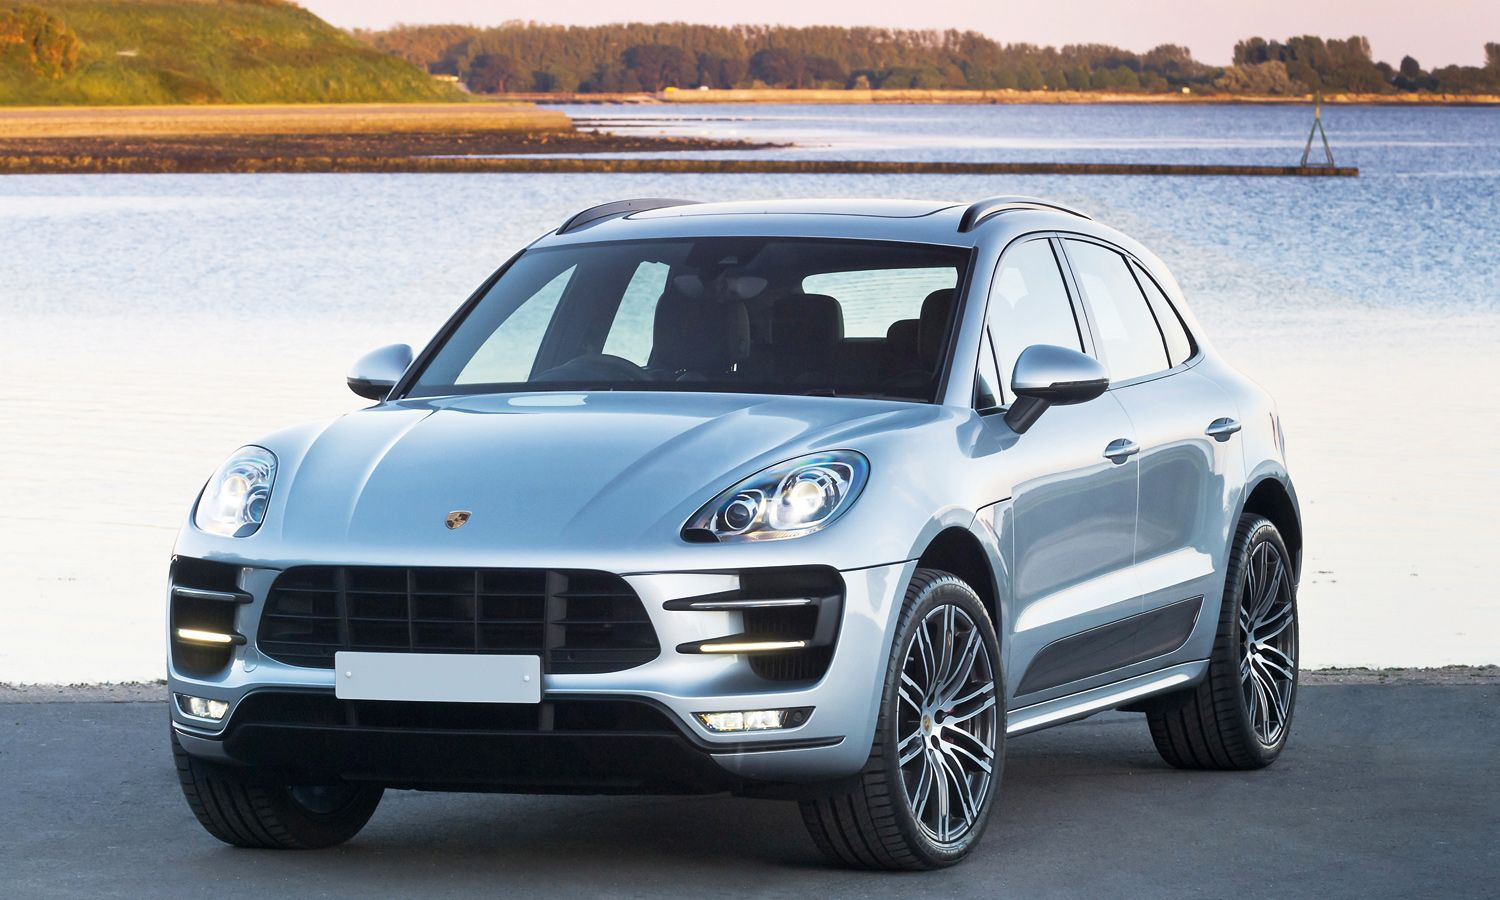 Behind The Wheel Porsche Macan Turbo 2017 Tatler Hong Kong